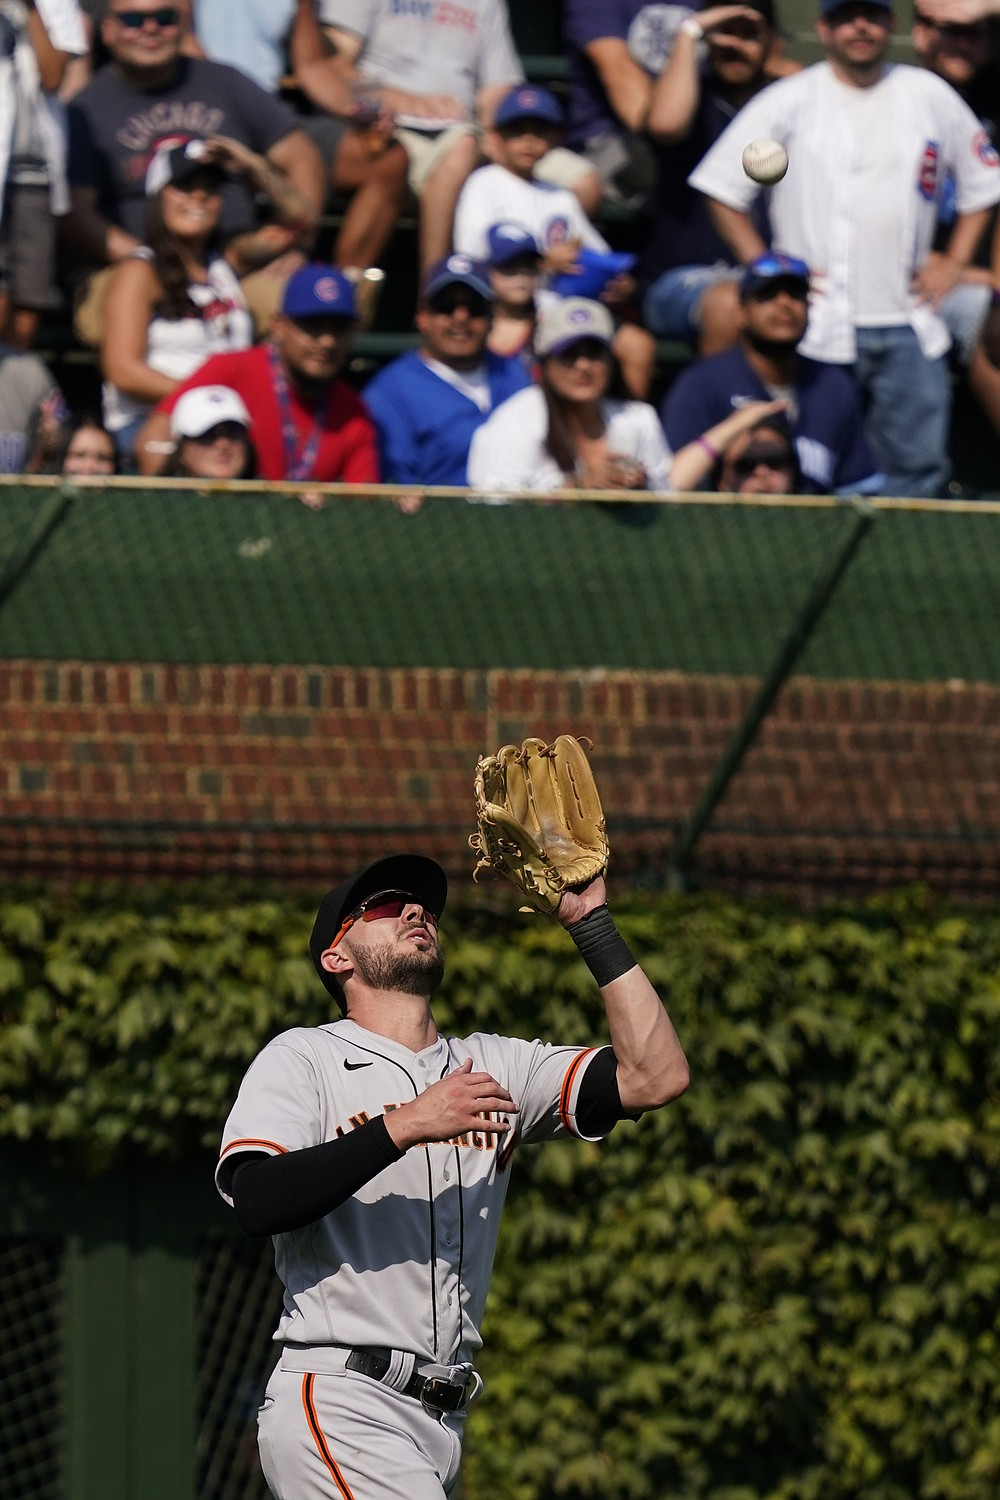 San Francisco Giants left fielder Kris Bryant catches a fly ball hit by Chicago Cubs' Ian Happ during the sixth inning of a baseball game in Chicago, Friday, Sept. 10, 2021. (AP Photo/Nam Y. Huh)